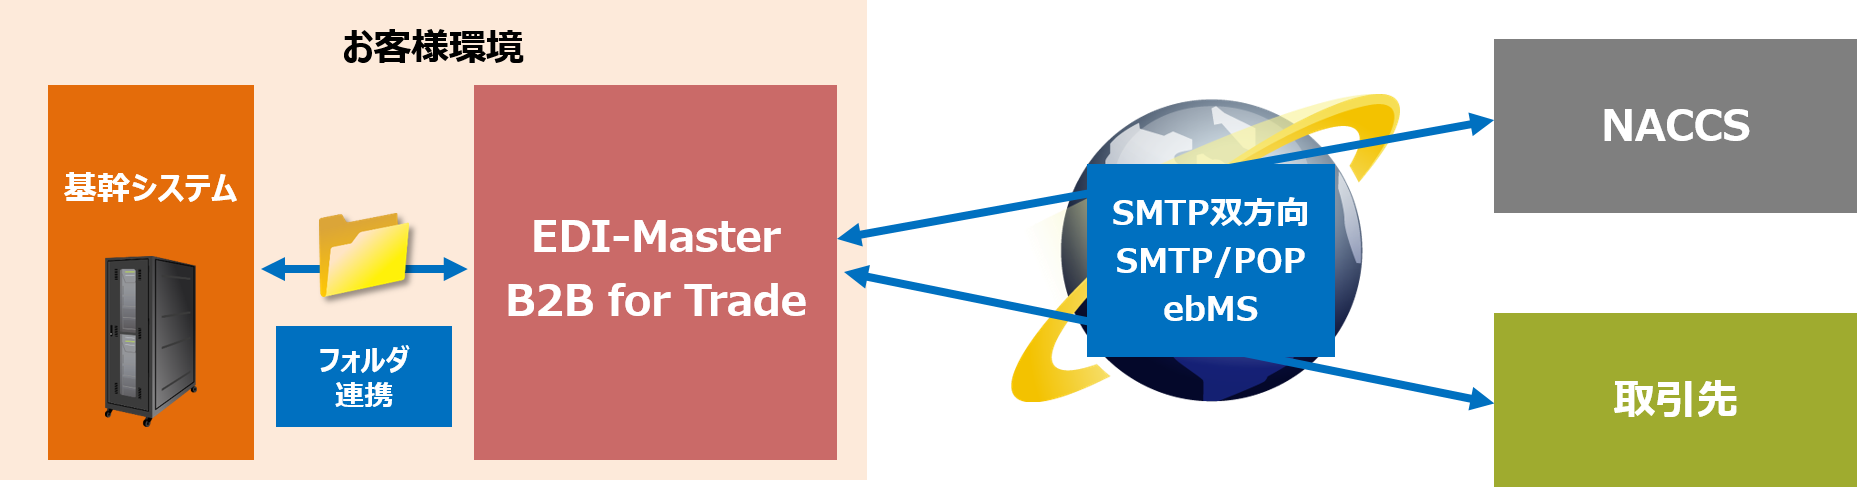 EDI-Master DEX for Trade概要図